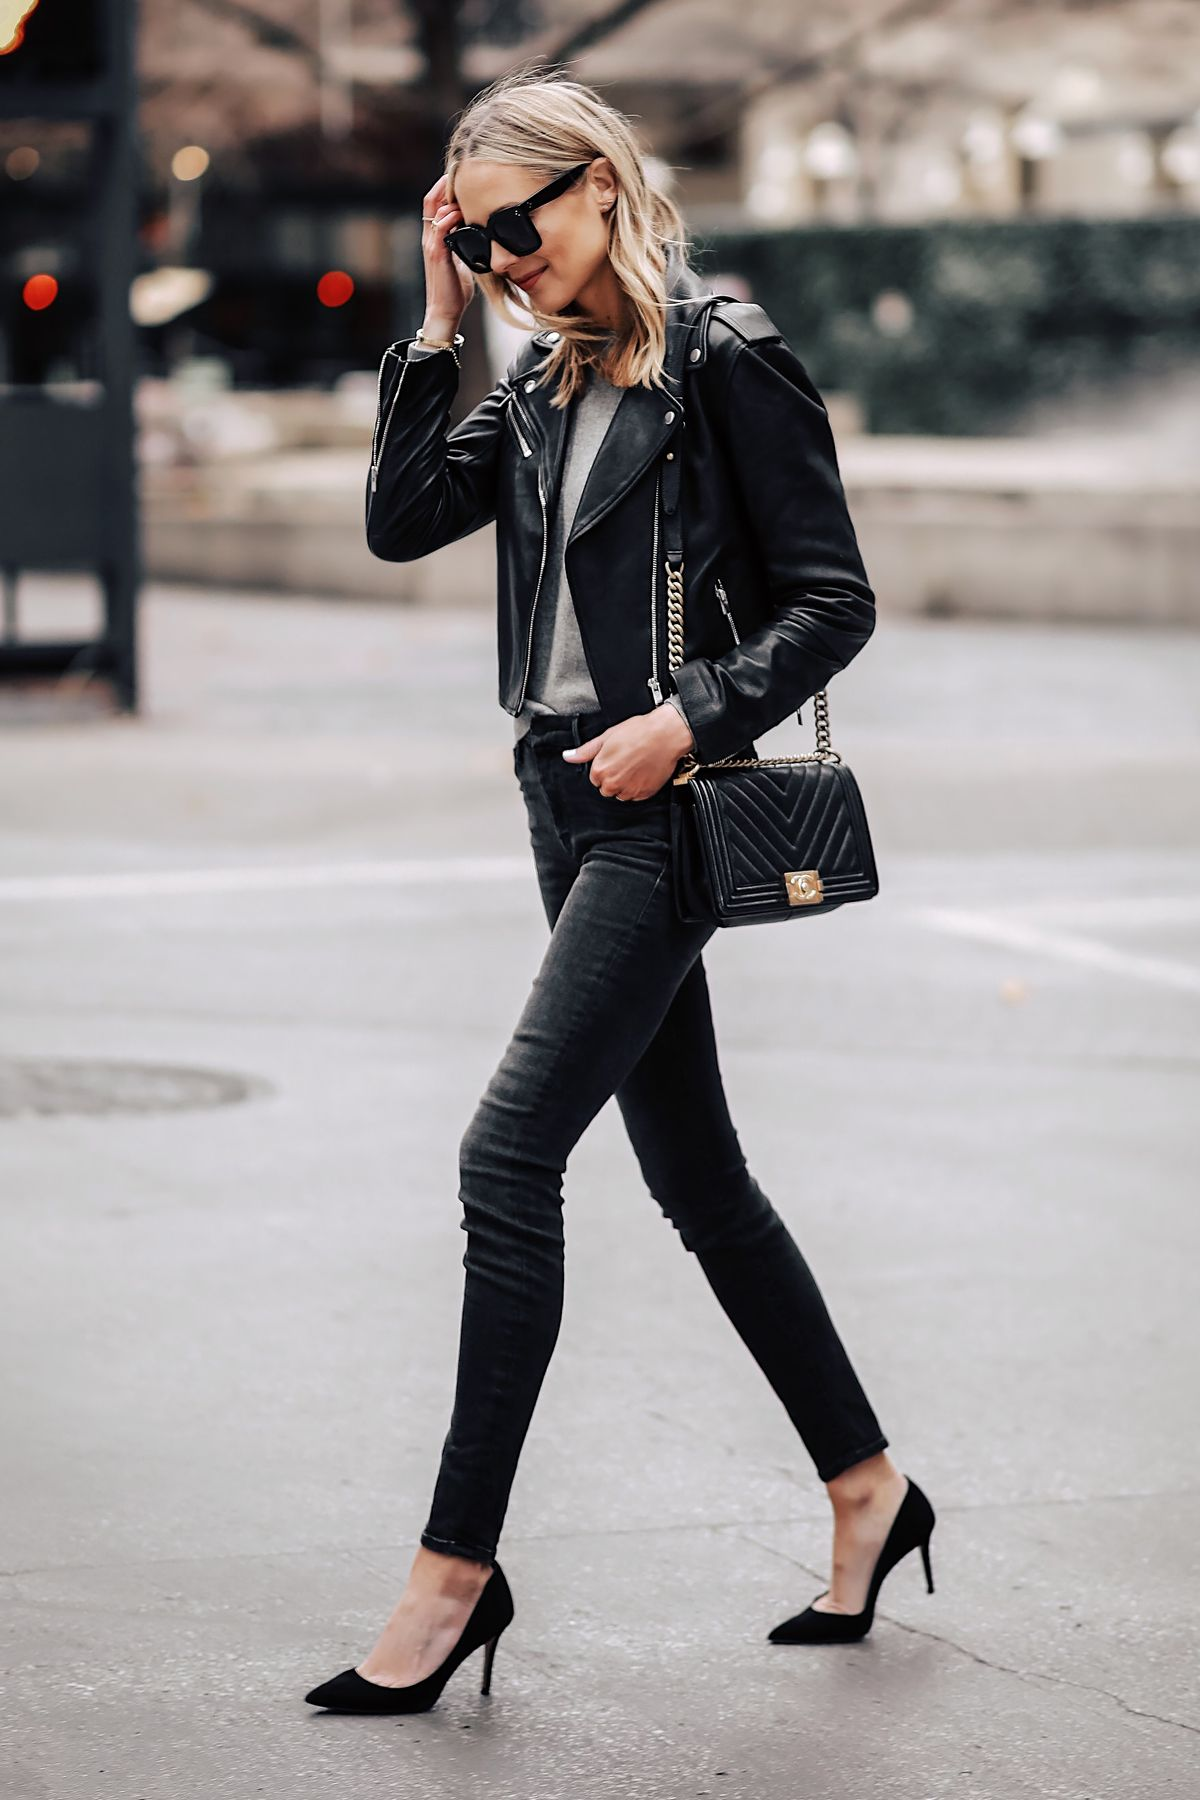 0d15925926 Blonde Woman Wearing Club Monaco Black Leather Jacket Grey Sweater Black  Skinny Jeans Black Pumps Fashion